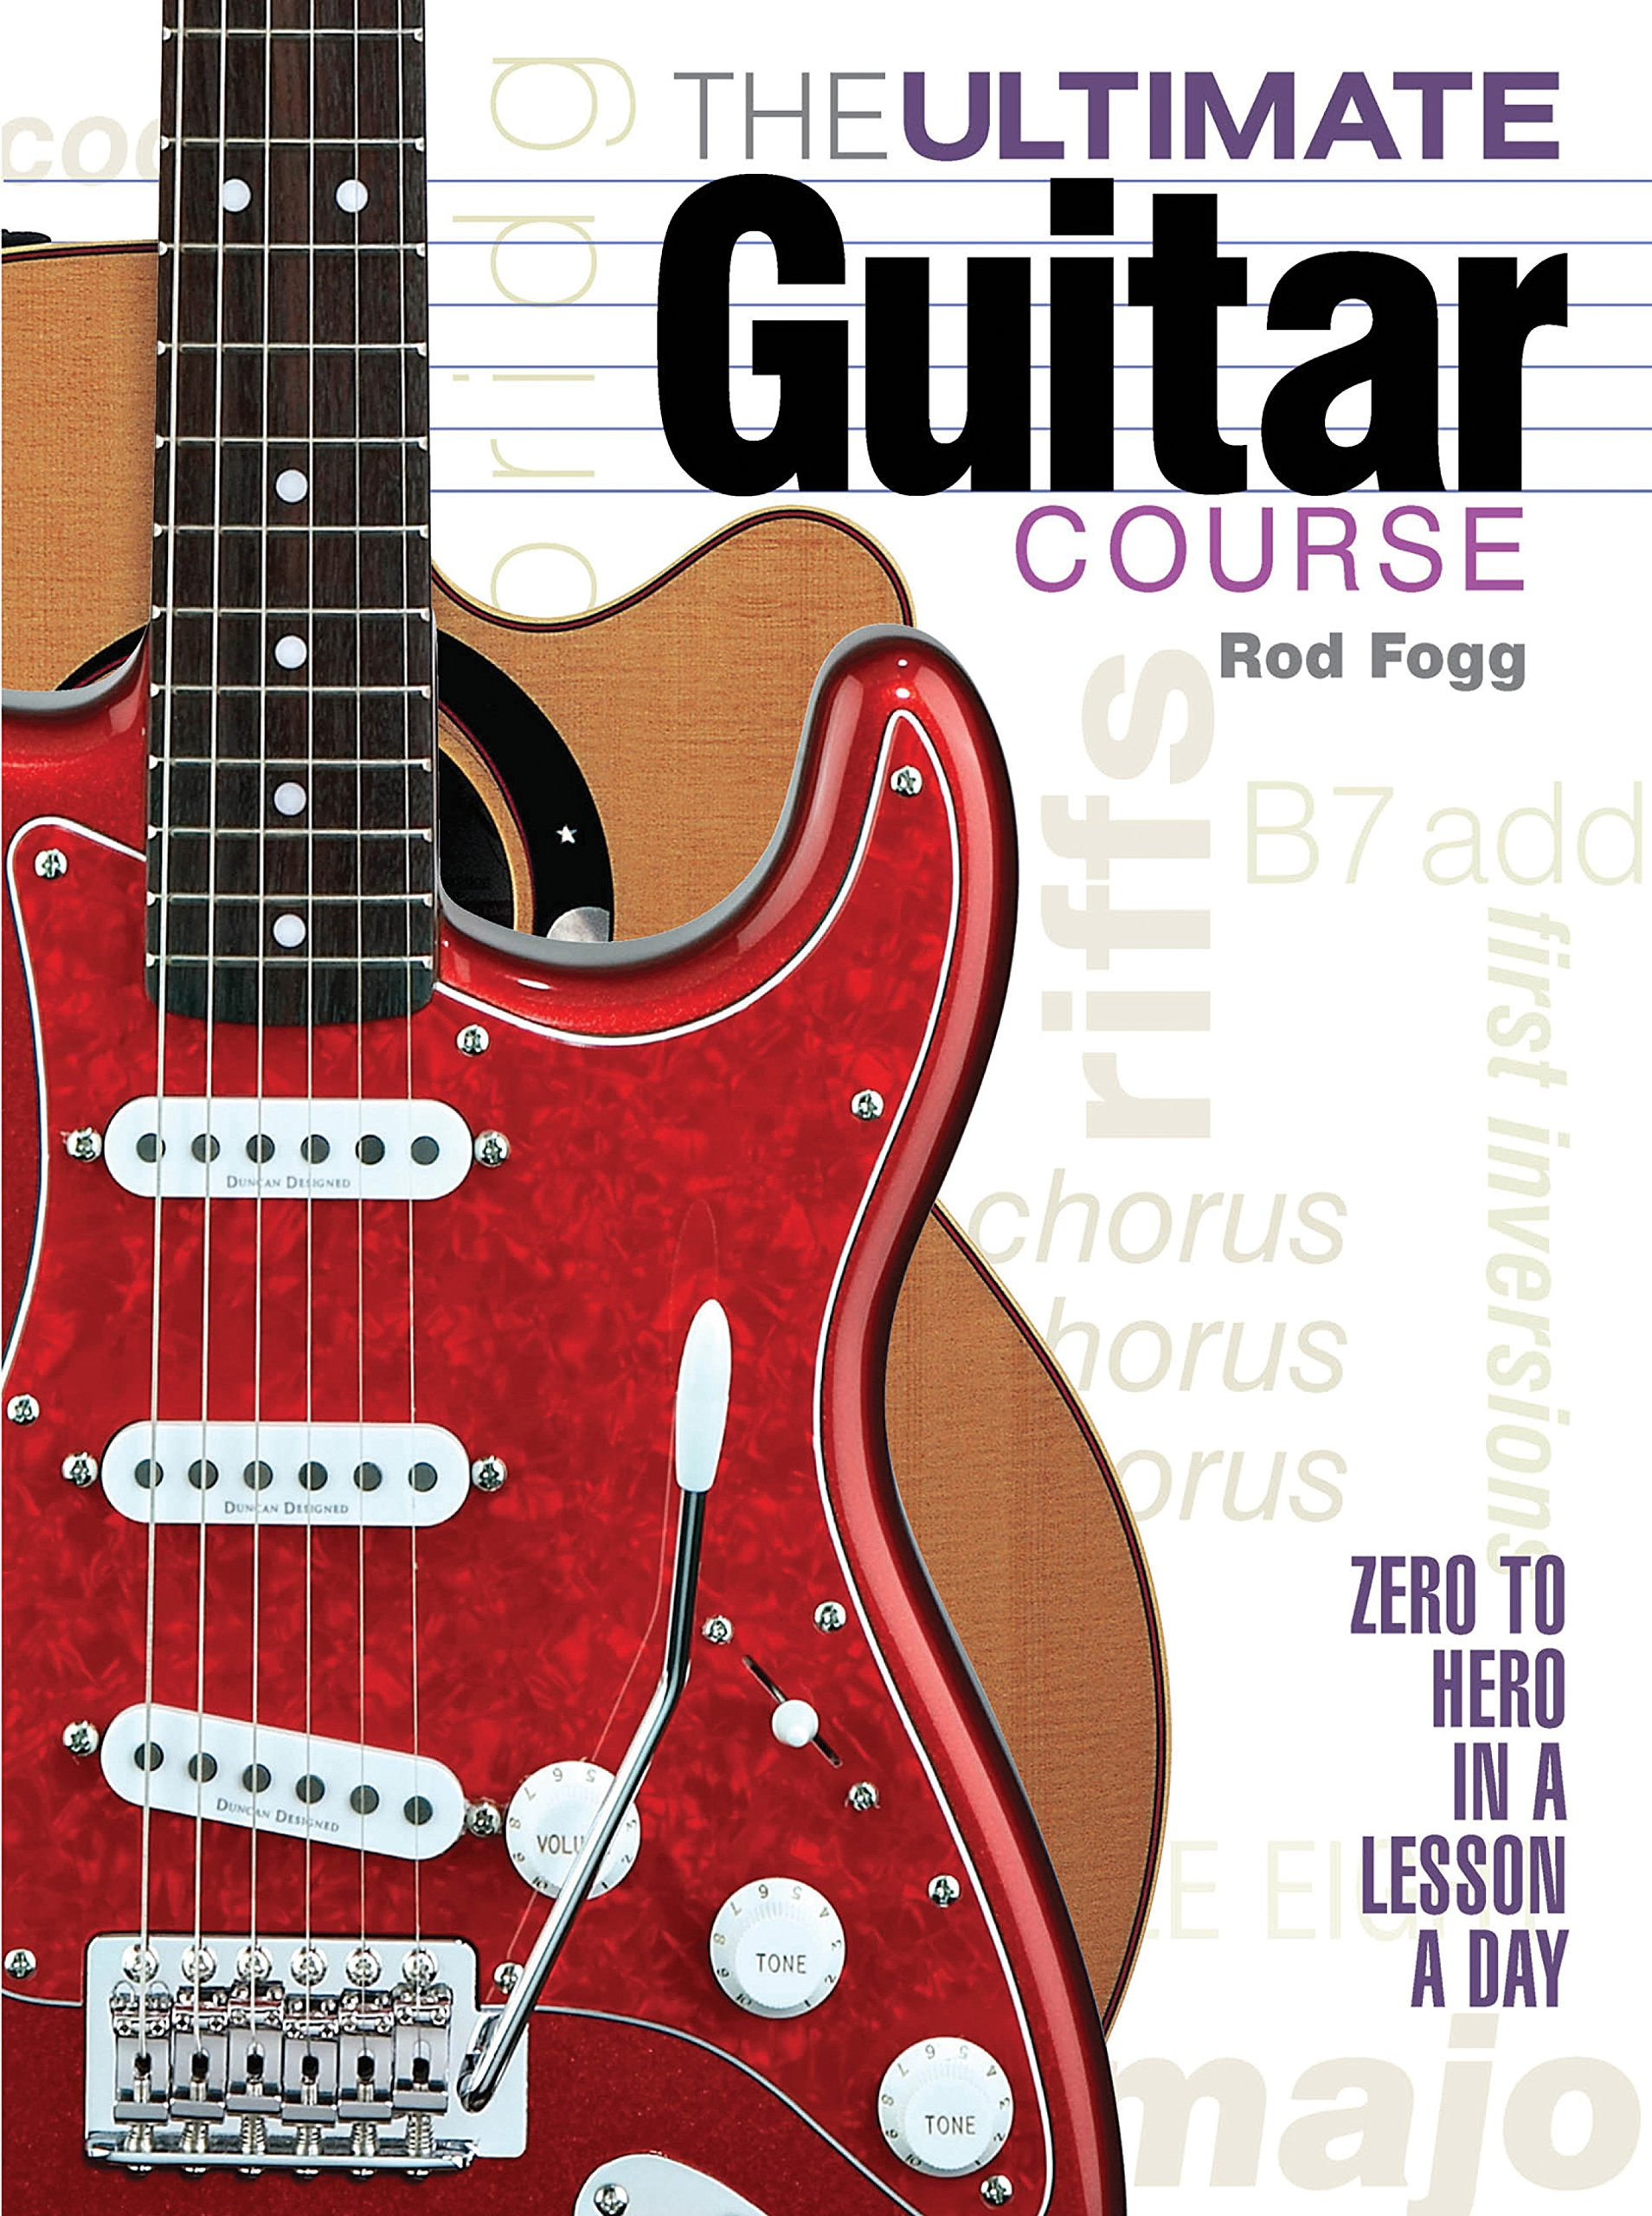 The Ultimate Guitar Course Zero To Hero In A Lesson A Day Rod Fogg